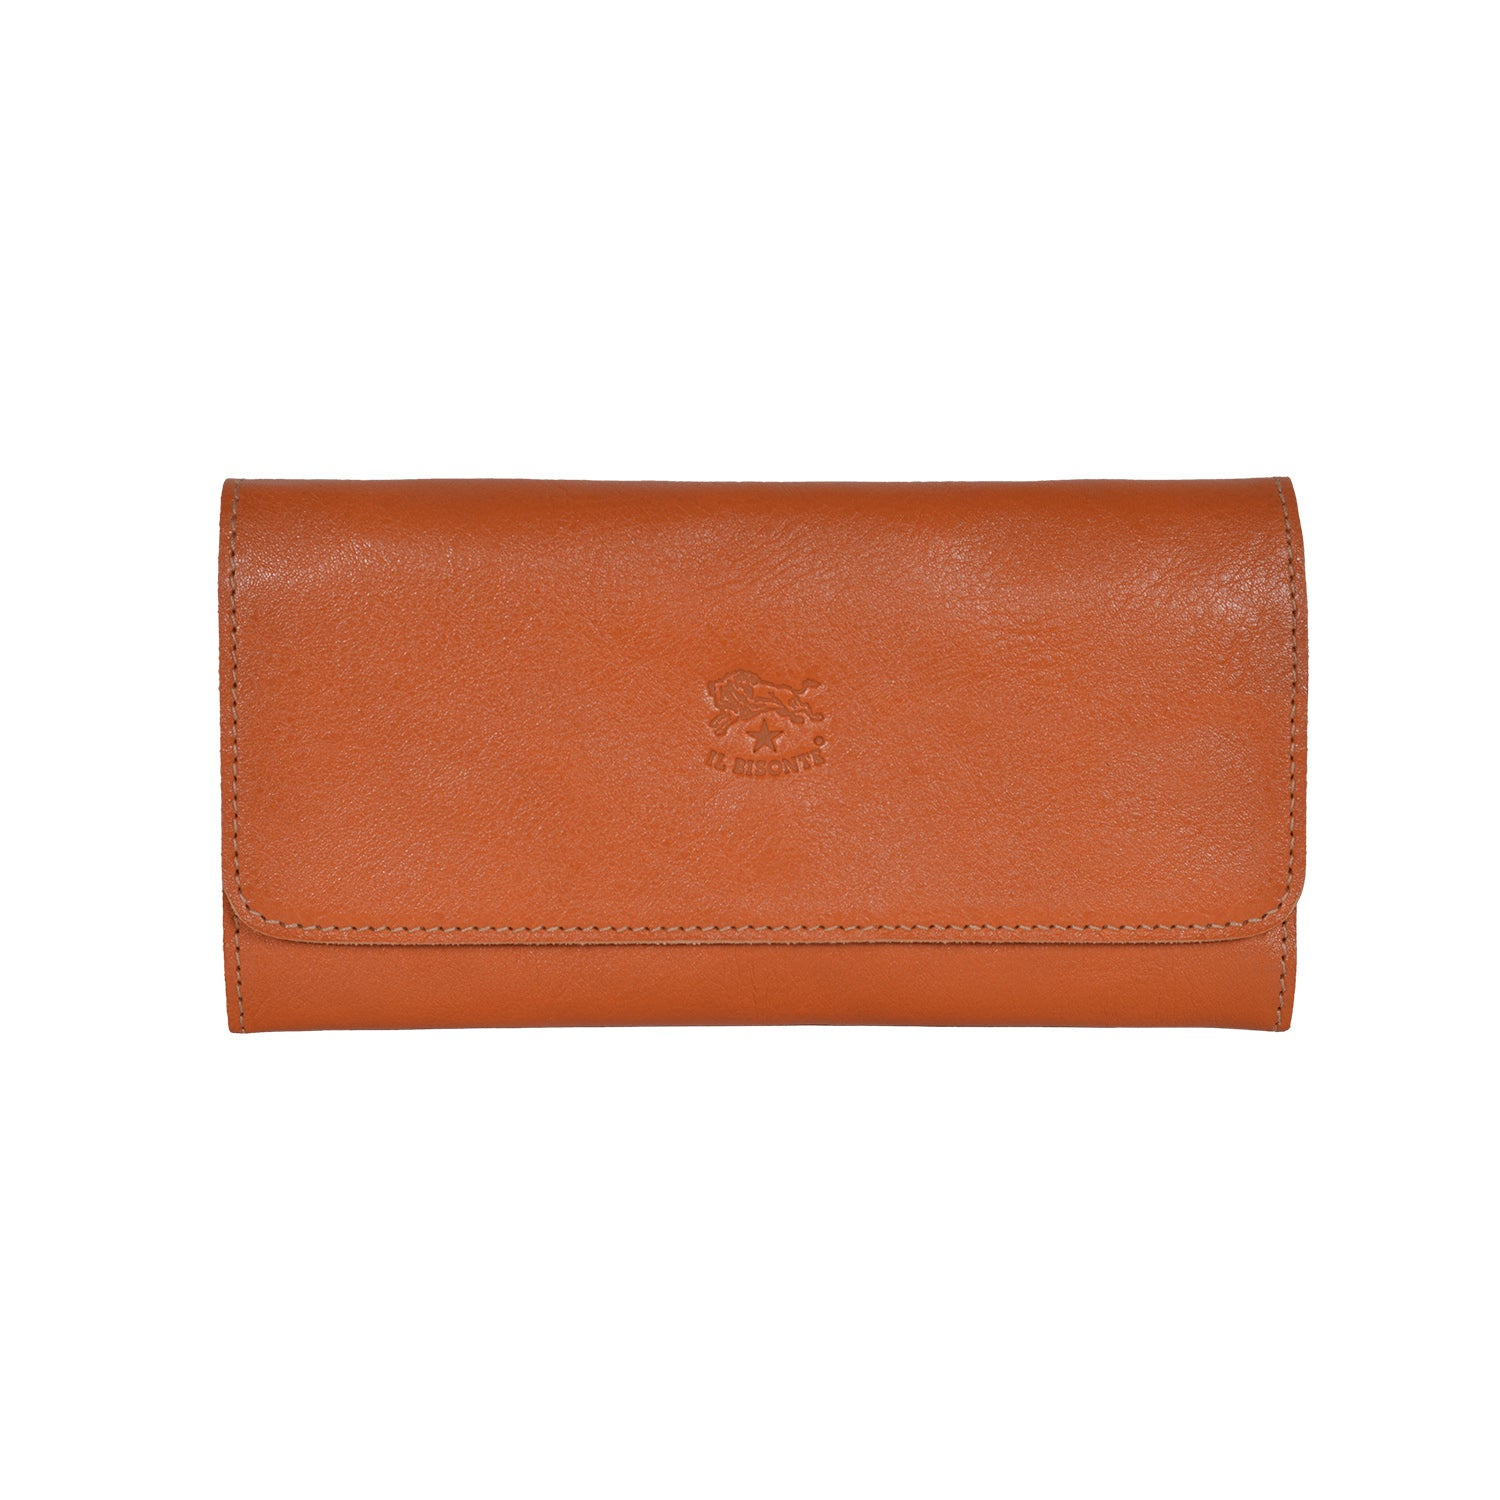 IL BISONTE WOMEN'S TRI-FOLD WALLET IN CARAMEL  COWHIDE LEATHER